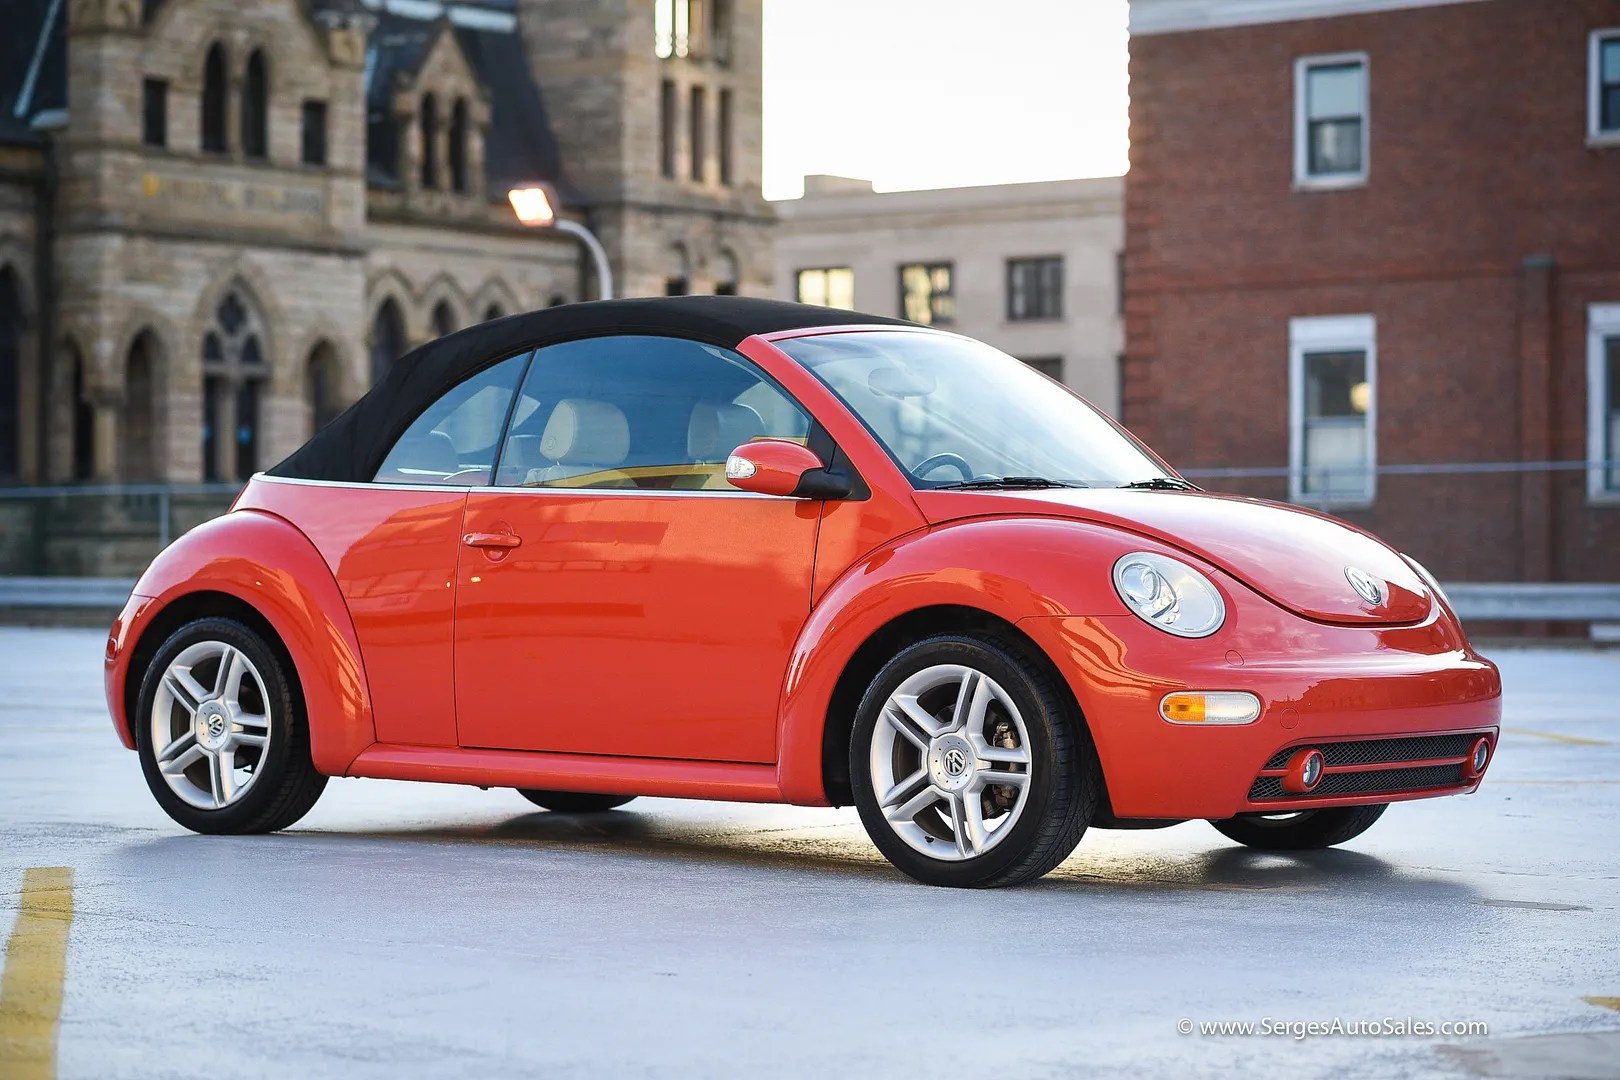 photo beetle-10_zpsmxm2hkqu.jpg